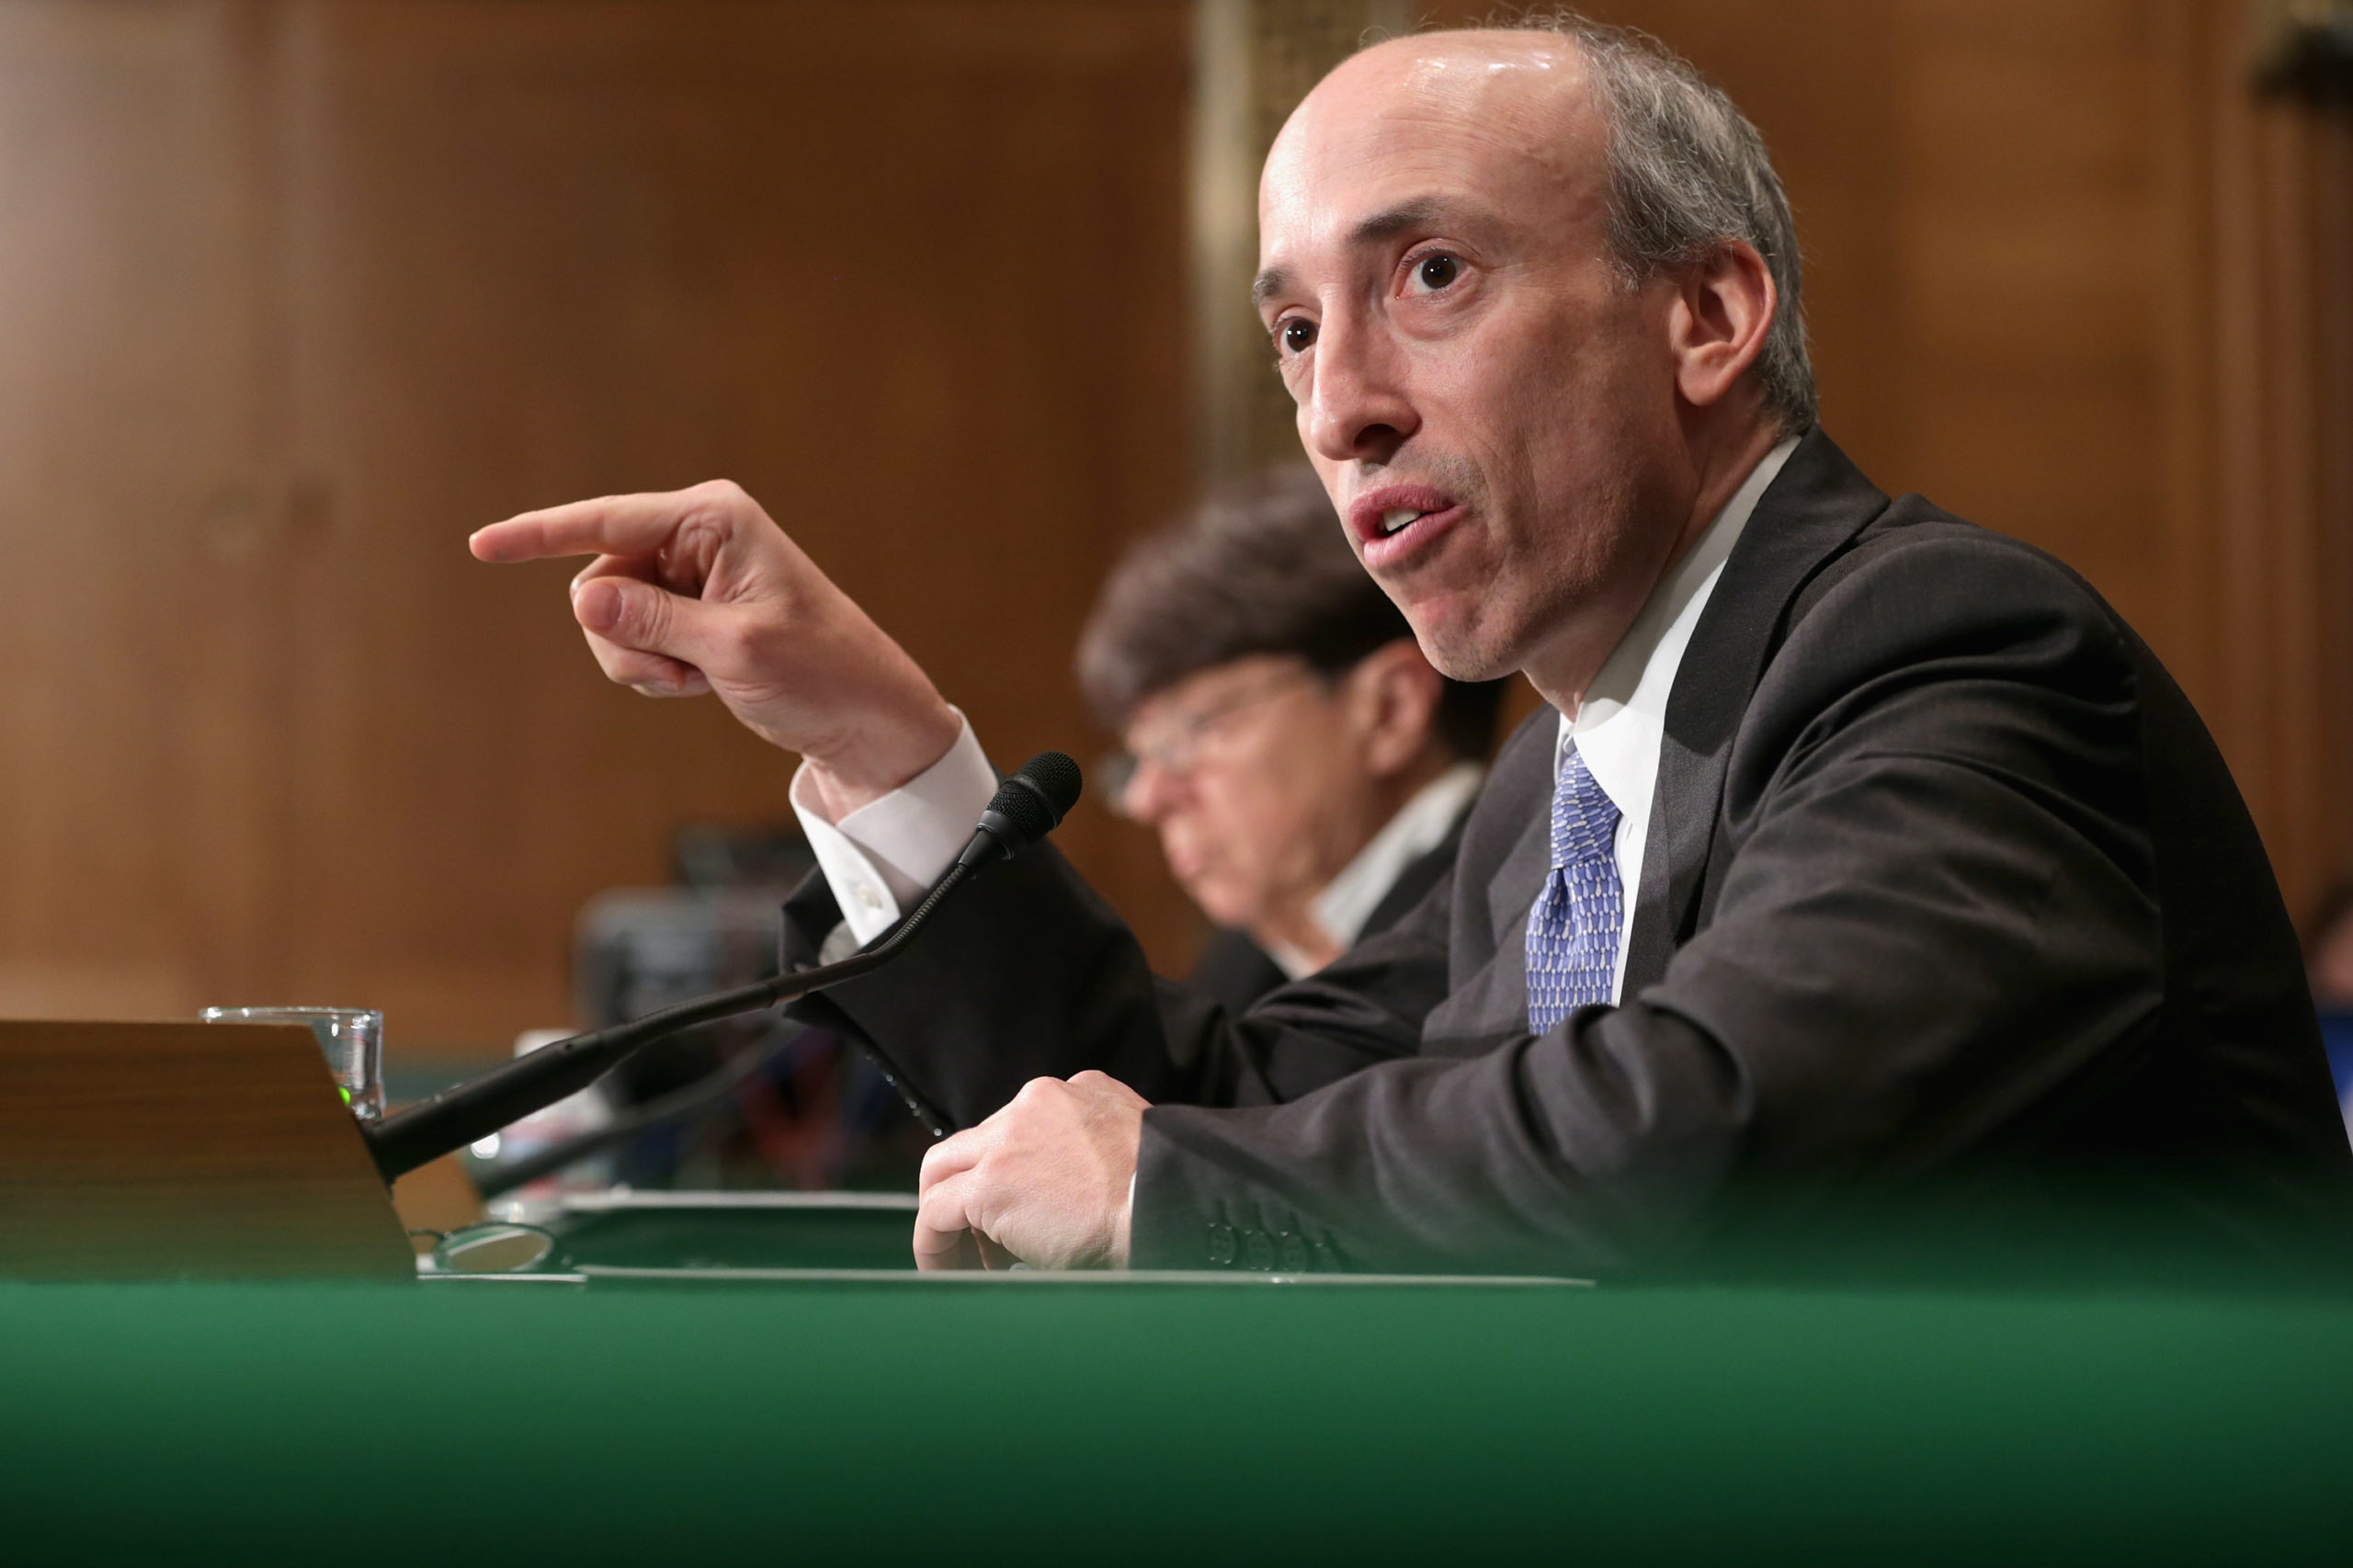 SEC Chairman Gary Gensler testifies before the Senate Banking Committee in 2013. (Chip Somodevilla/Getty Images)